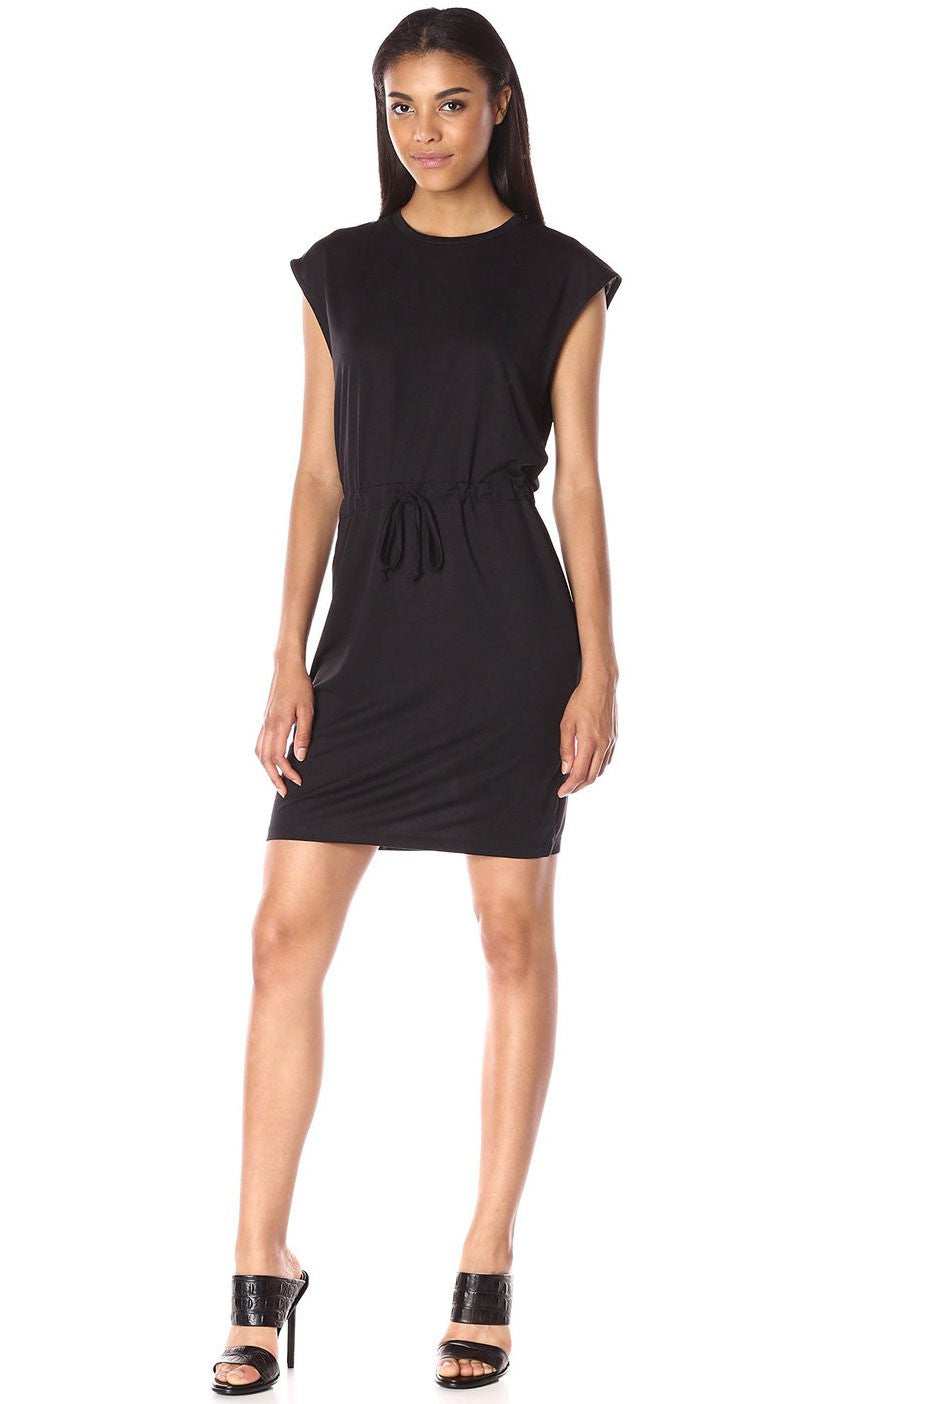 Womens casual street style oufit idea: Sleeveless drawstring casual black mini dress. Front view.